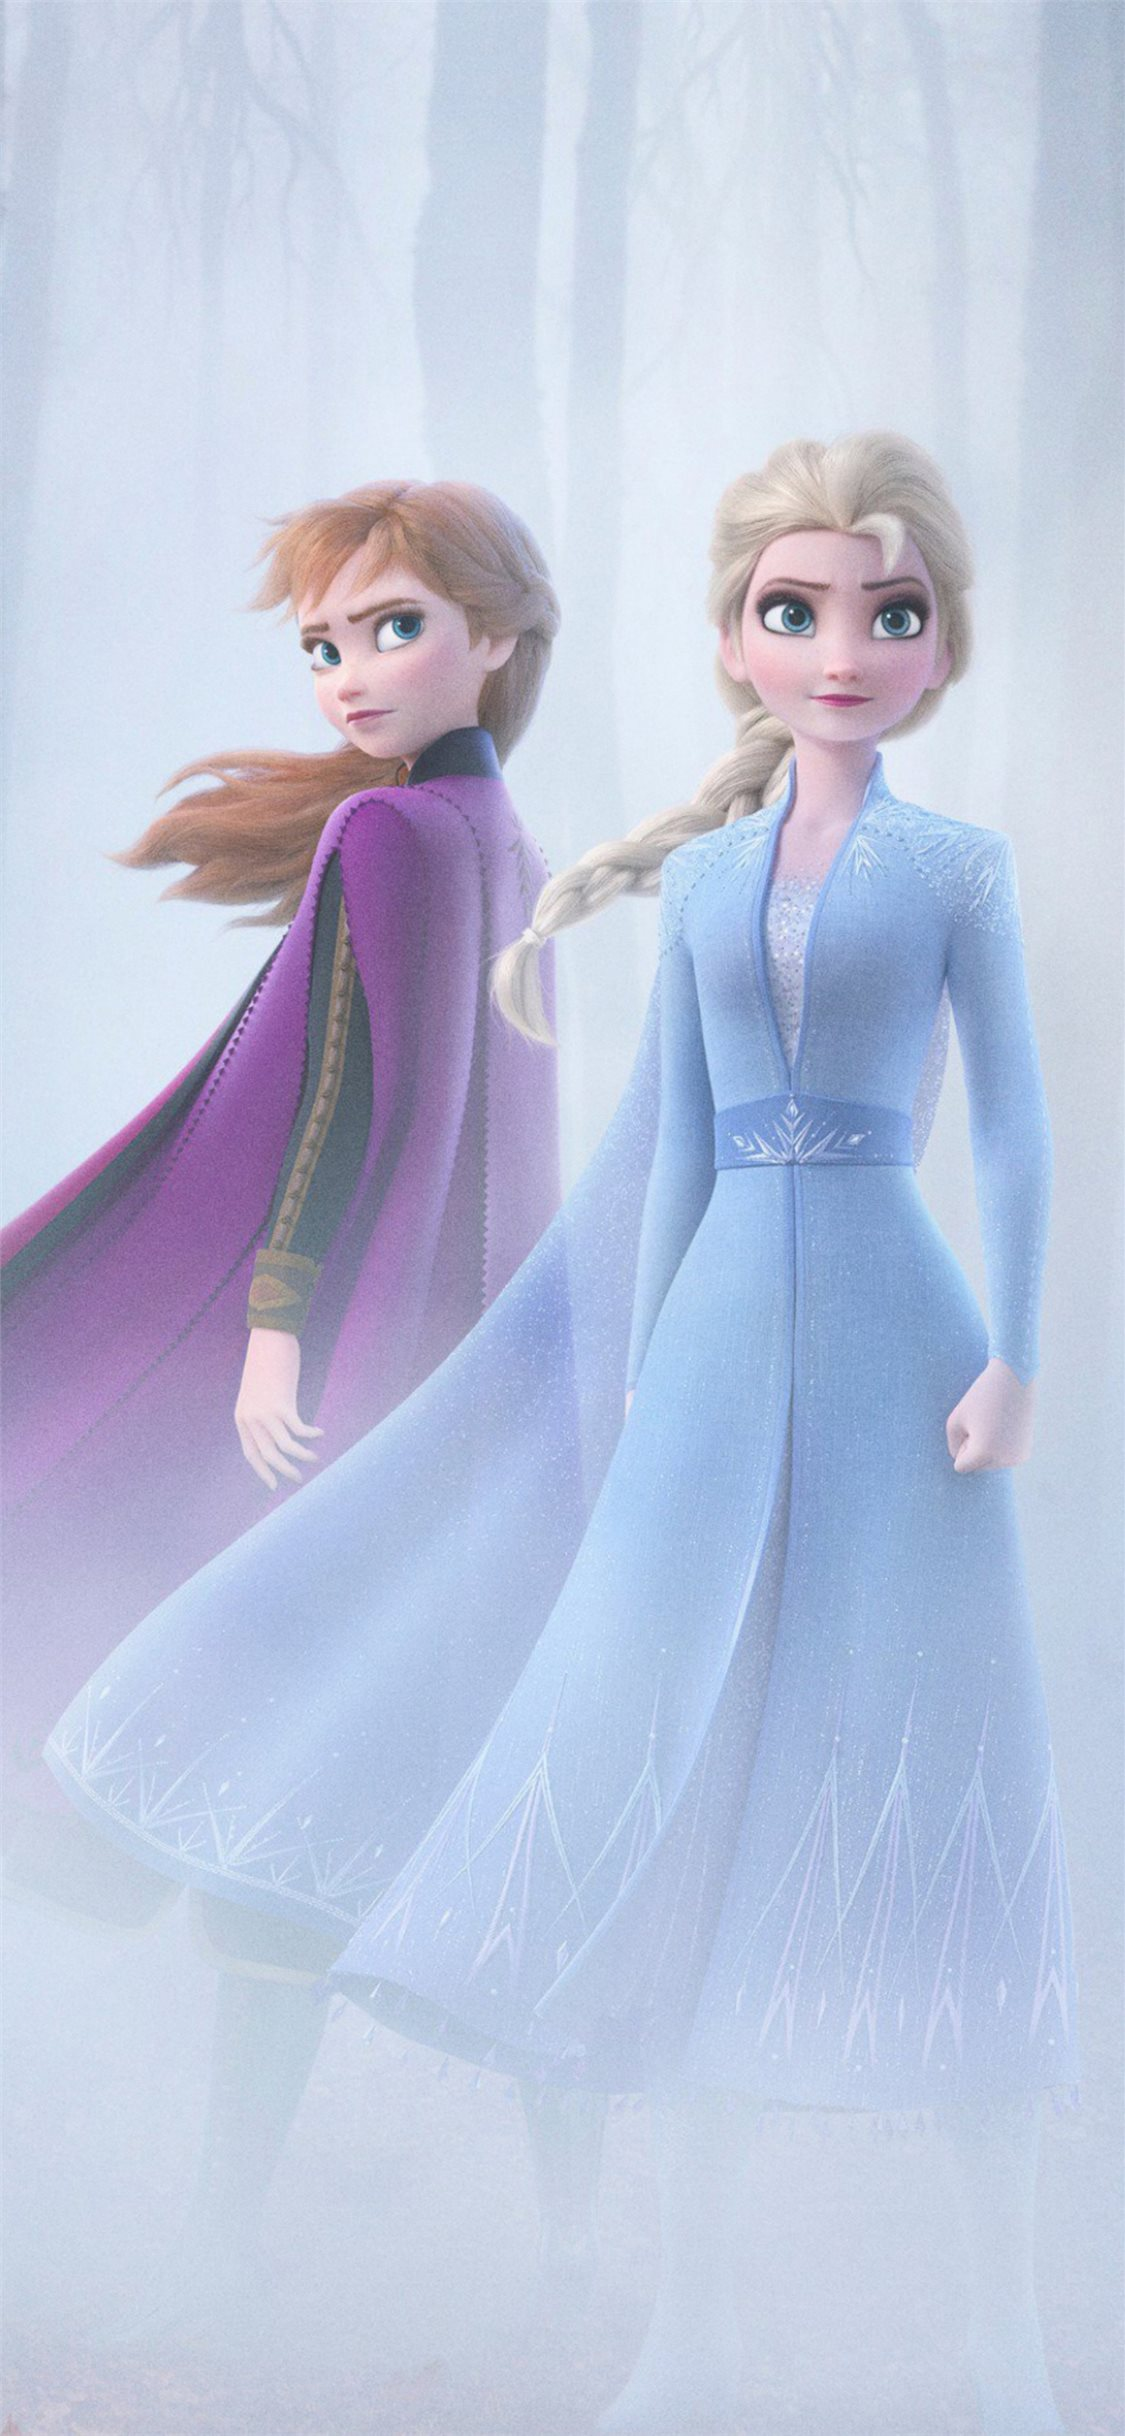 Anna And Elsa In Frozen 2 4k Iphone X Wallpapers Free Download